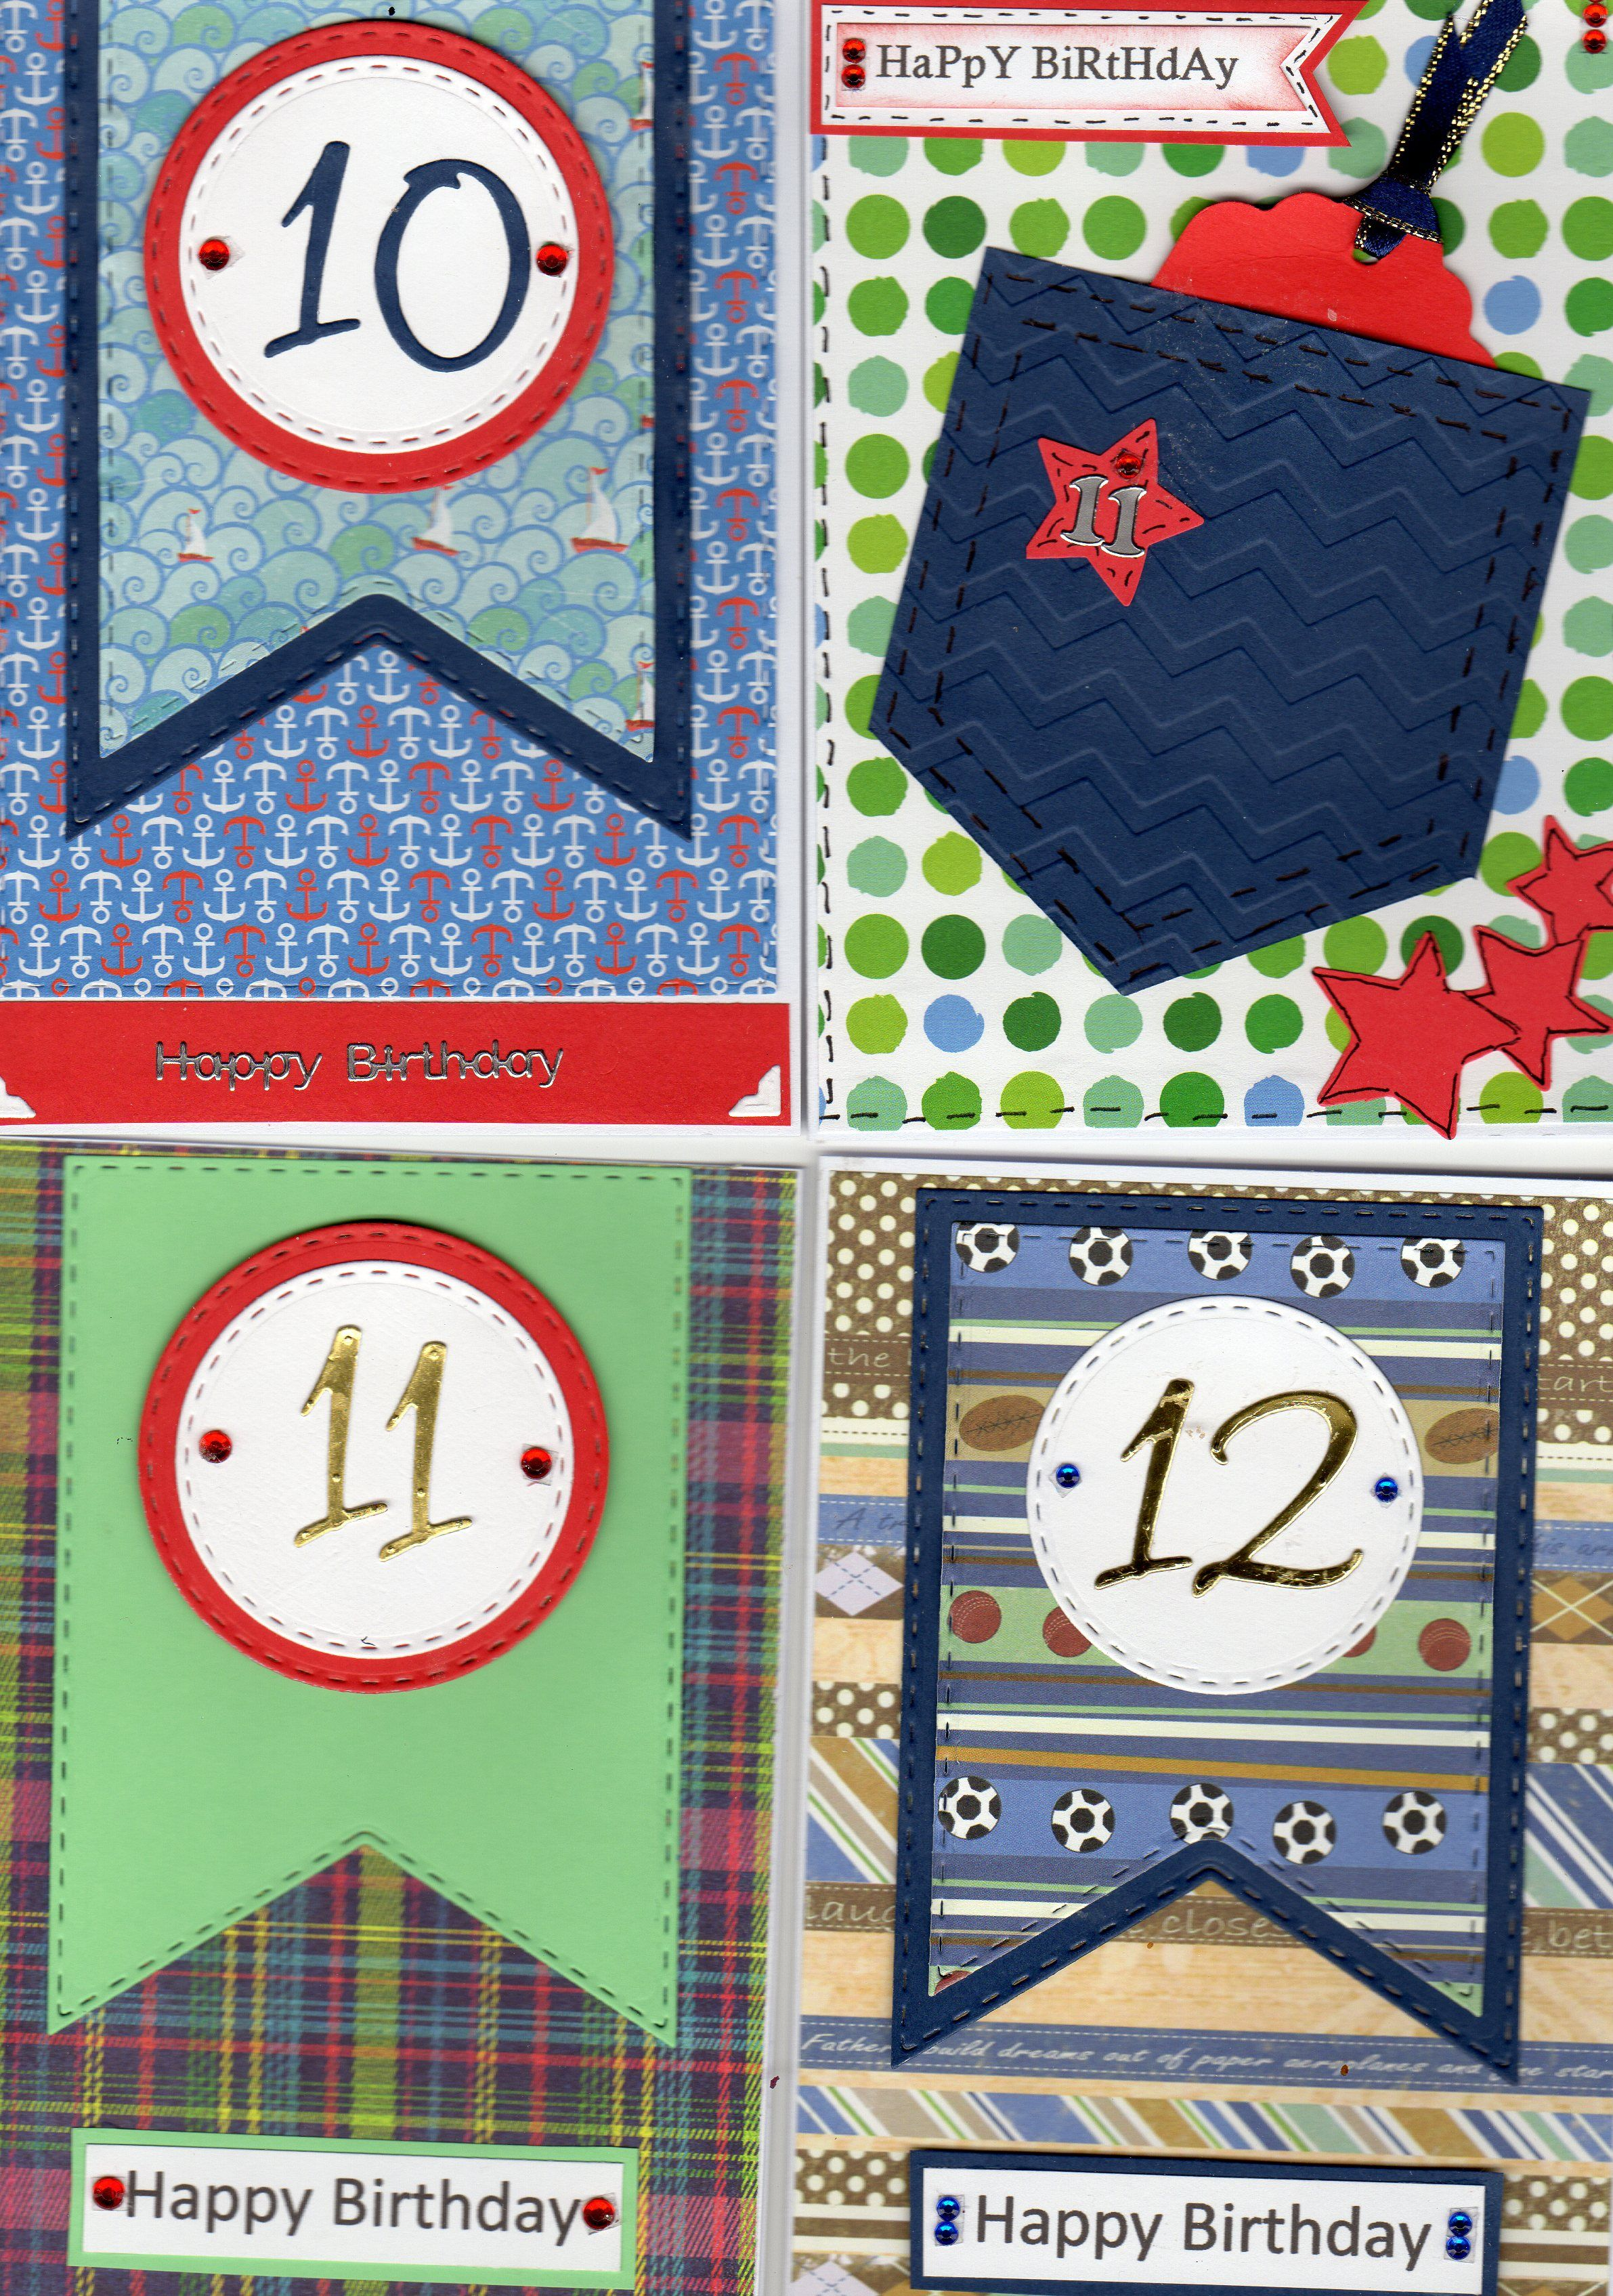 10 11 And 12 Year Old Boys Birthday Cards Using The Justrite Banners Rectangles Die Set Pocket Card Was Inspired By Waste From Banner